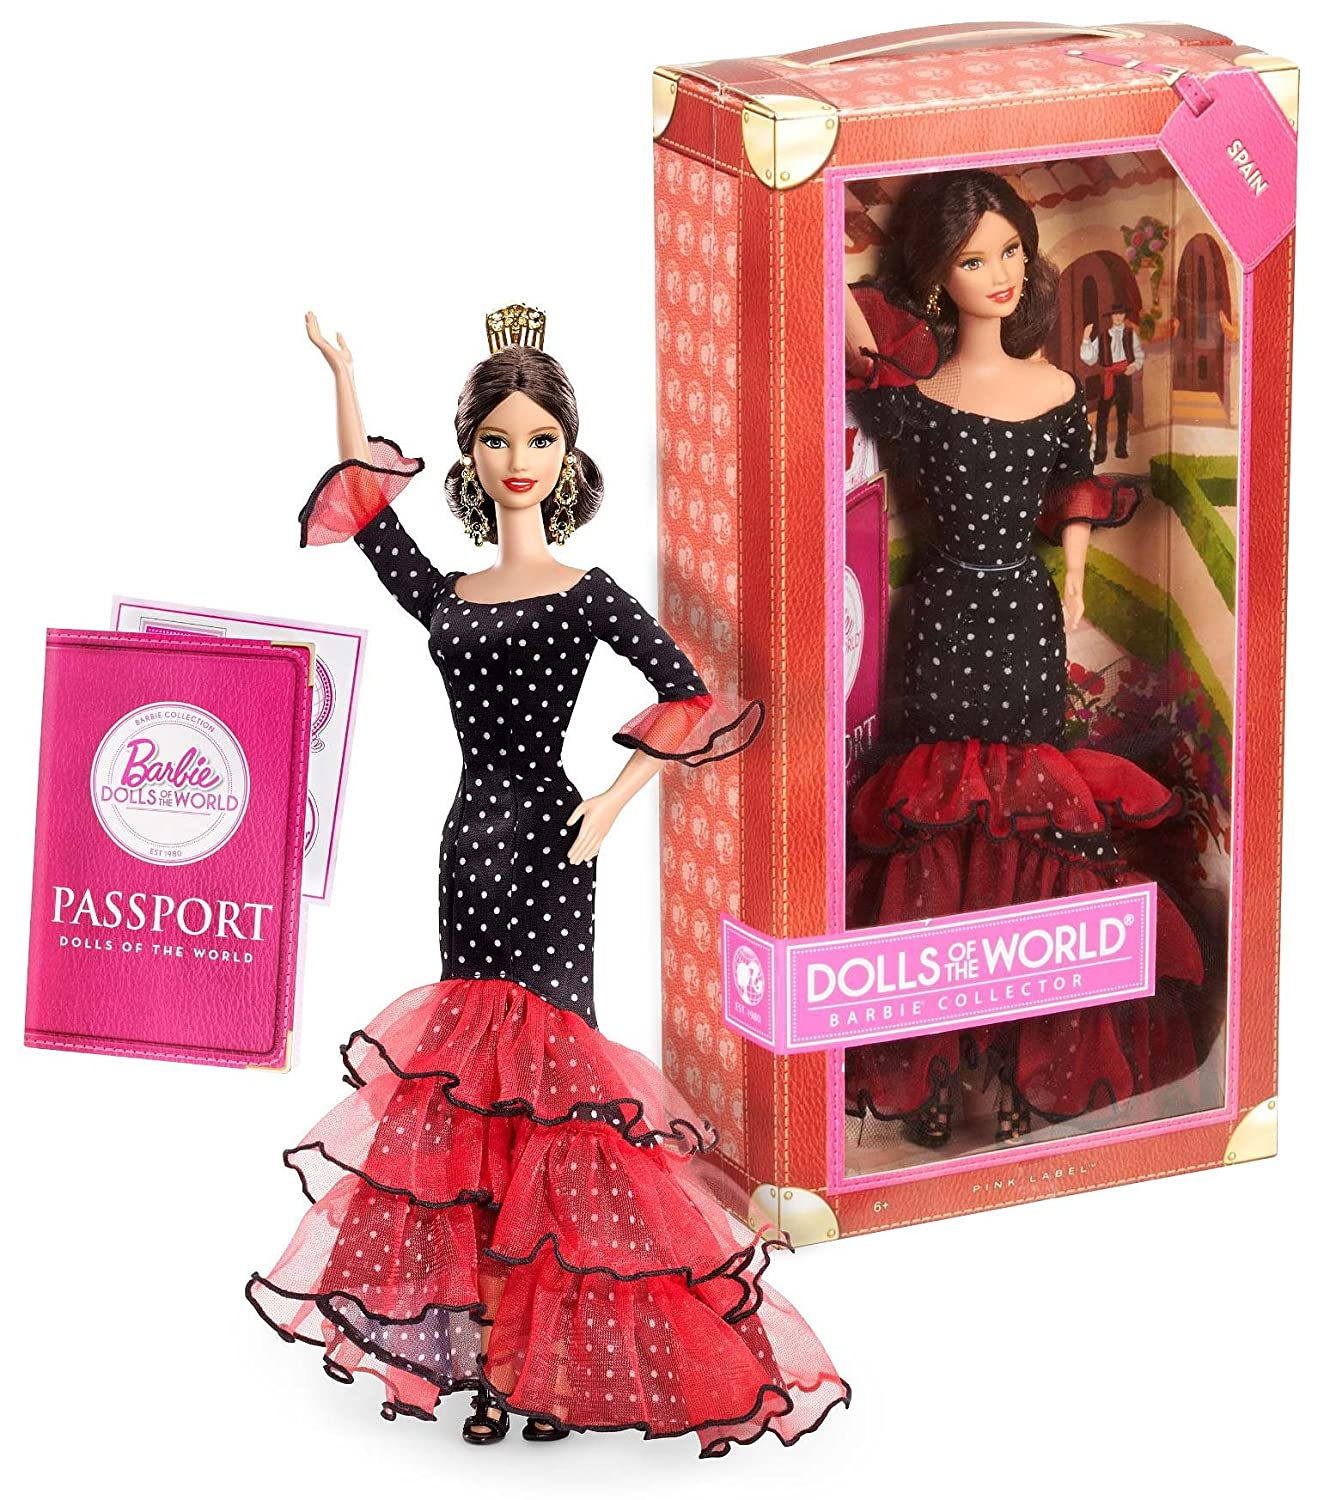 Barbie Spain ~11.5' Doll: Pink Label Dolls of the World Barbie Collector Series by Mattel X8421